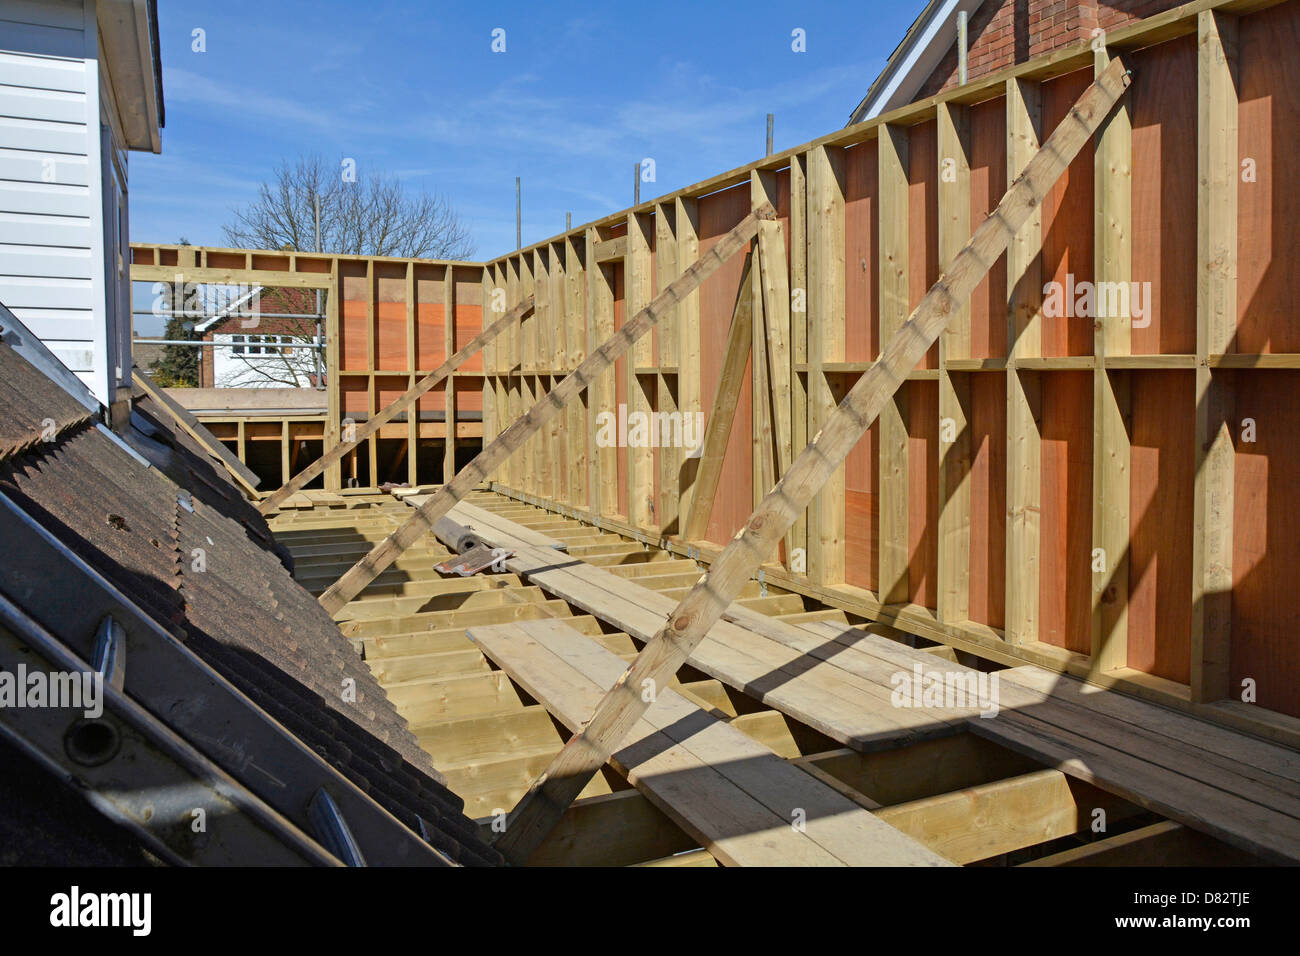 Detached house new bedroom extension first floor joist & timber ...